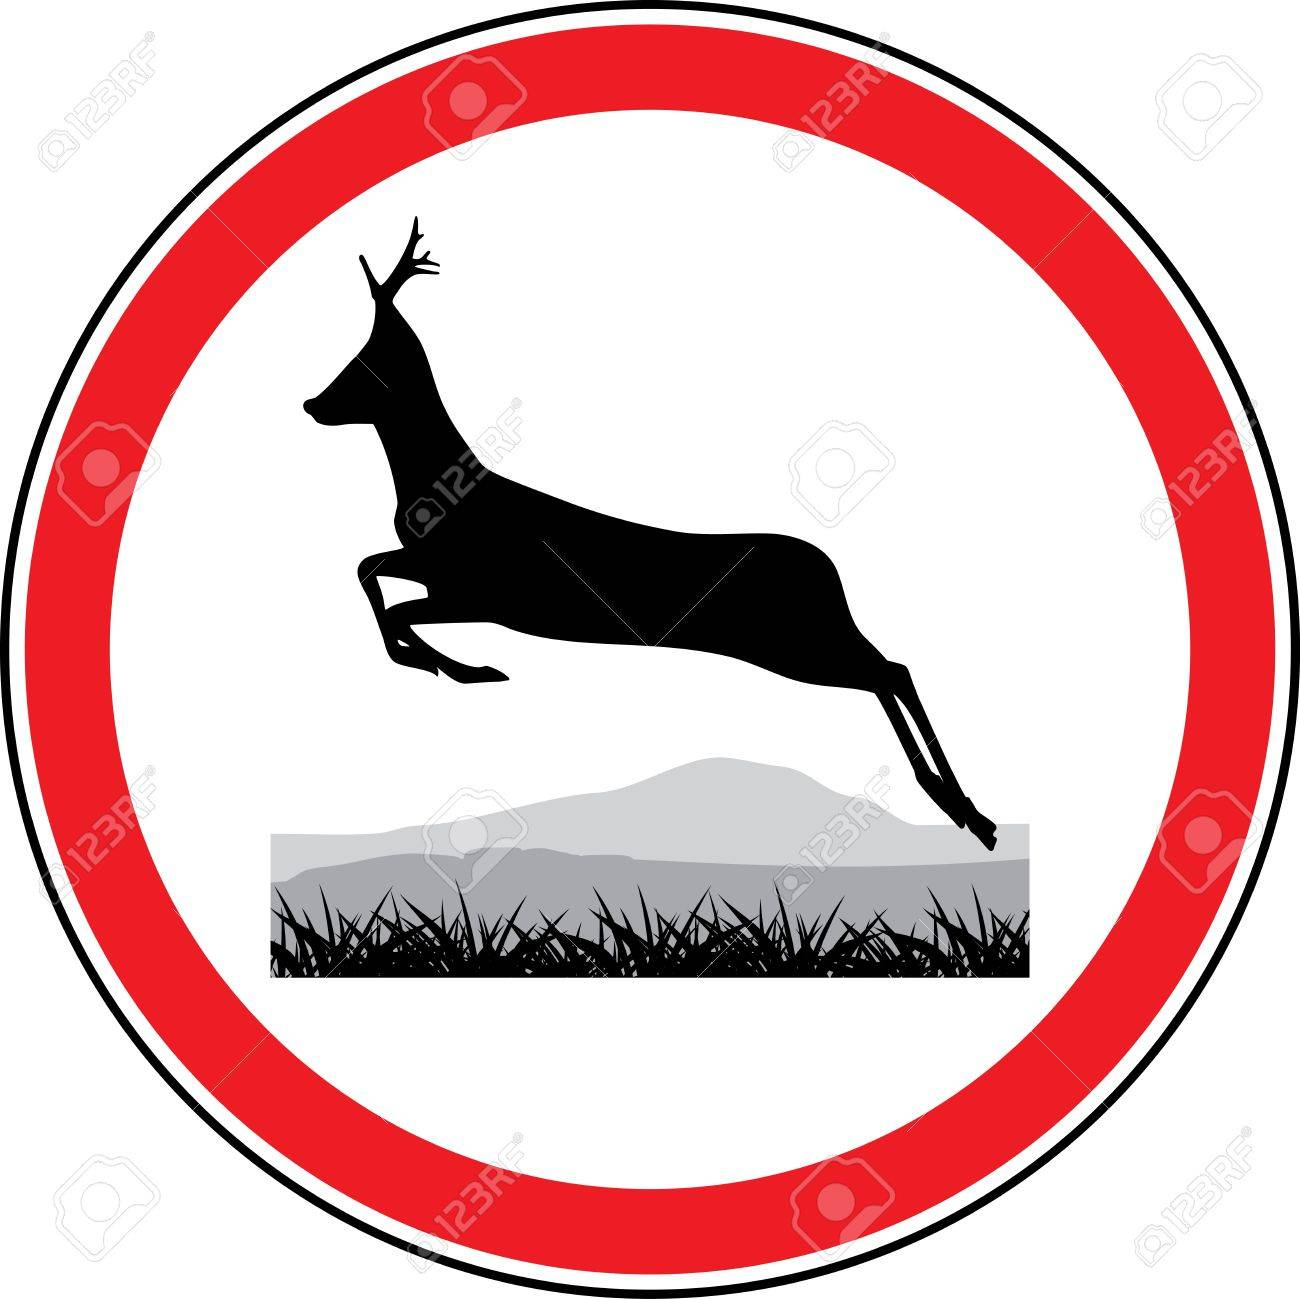 silhouette of a running deer road sign stock vector 16270945